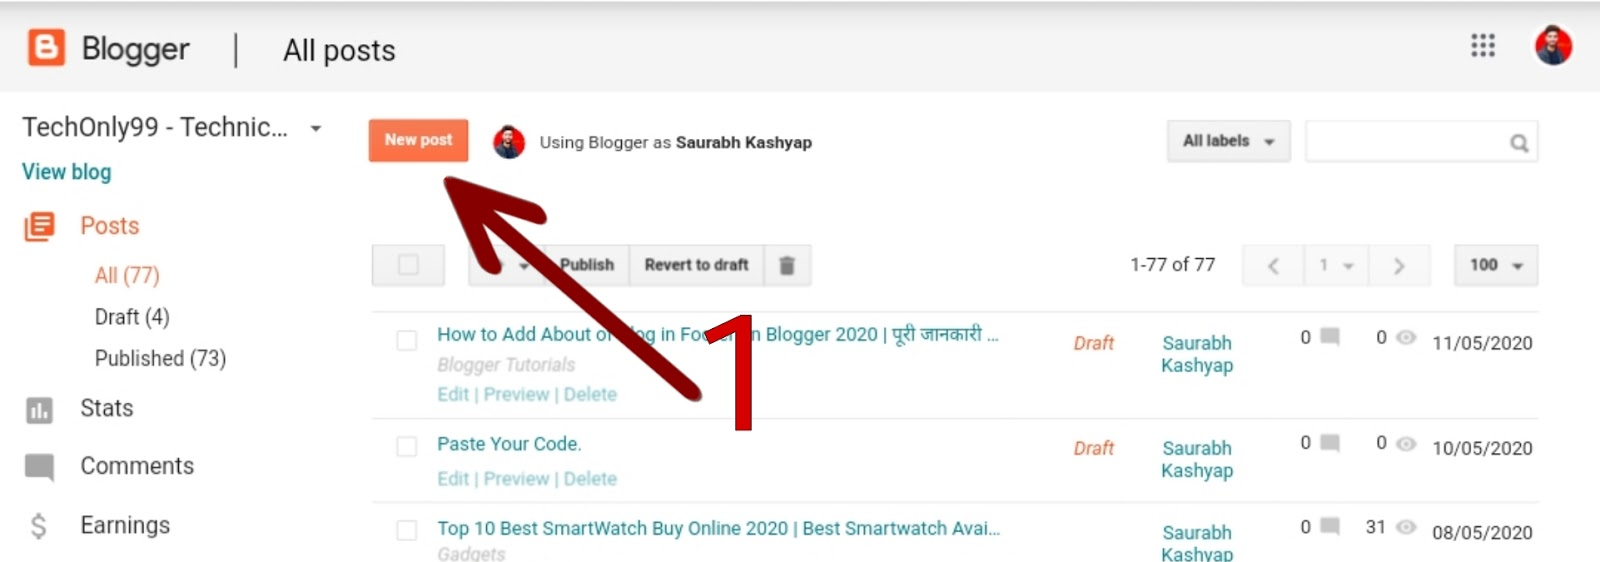 How to Add About of Blog Author in Footer on Blogger 2020 in Hindi